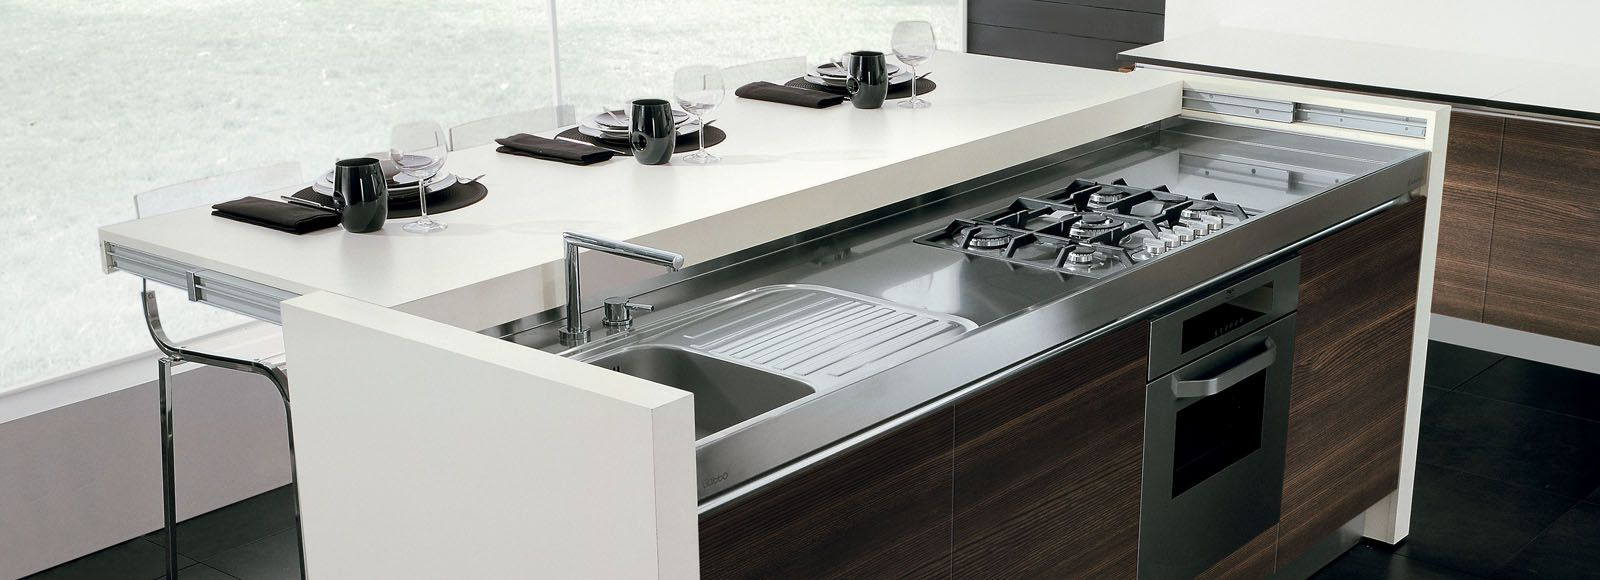 Cucina Componibile Gatto Gatto Cucine Sliding Cucina Kitchen Furniture Kitchen E